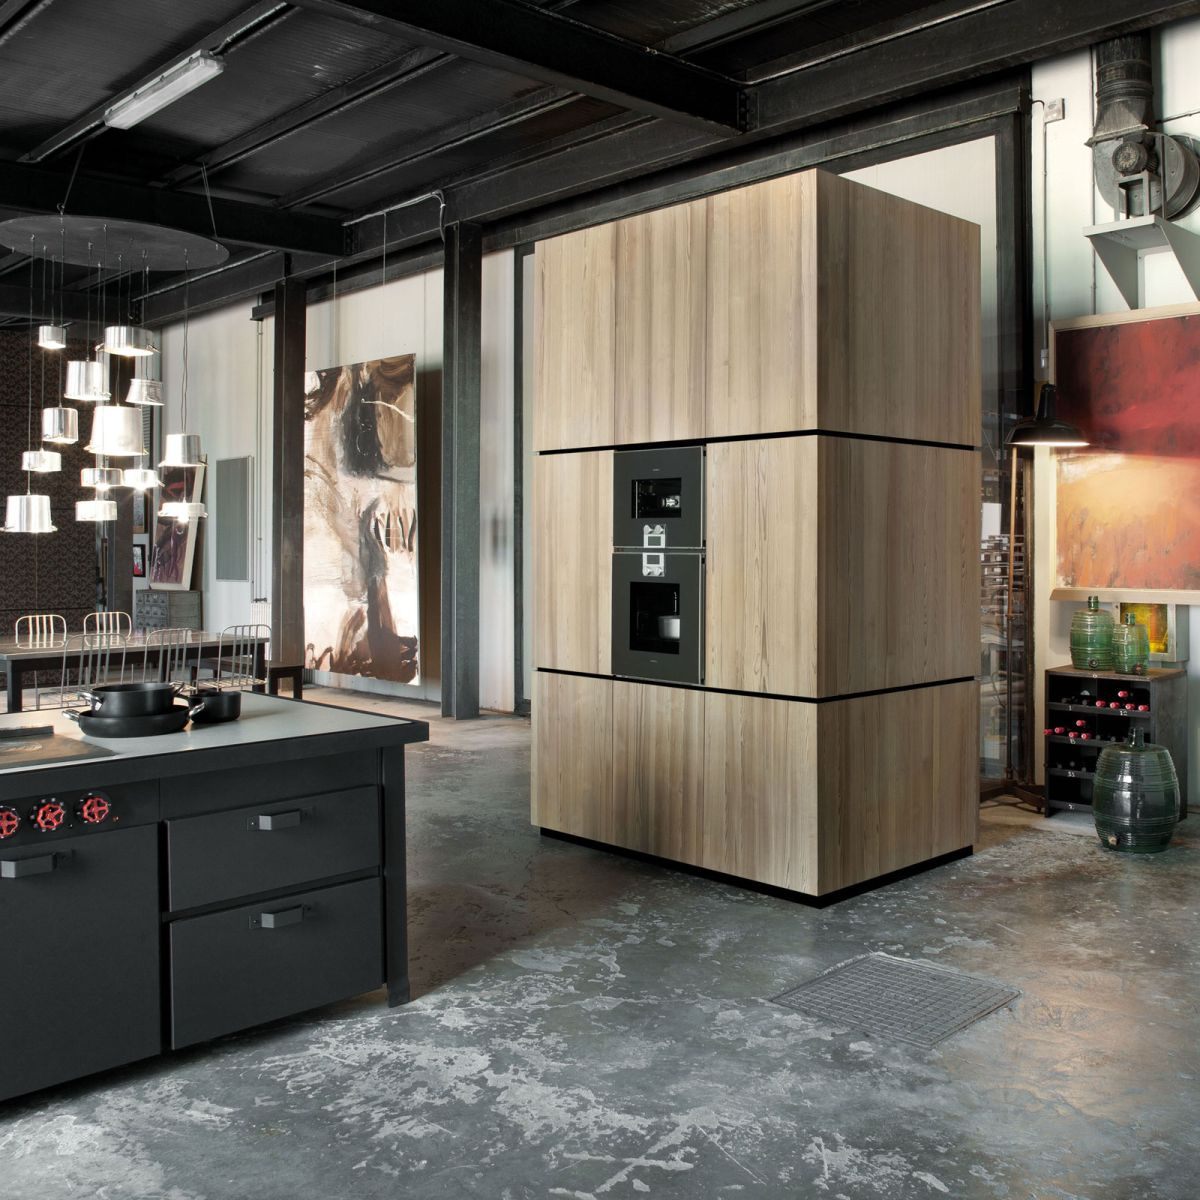 Loft Micassiolo in Milan wood cabinet